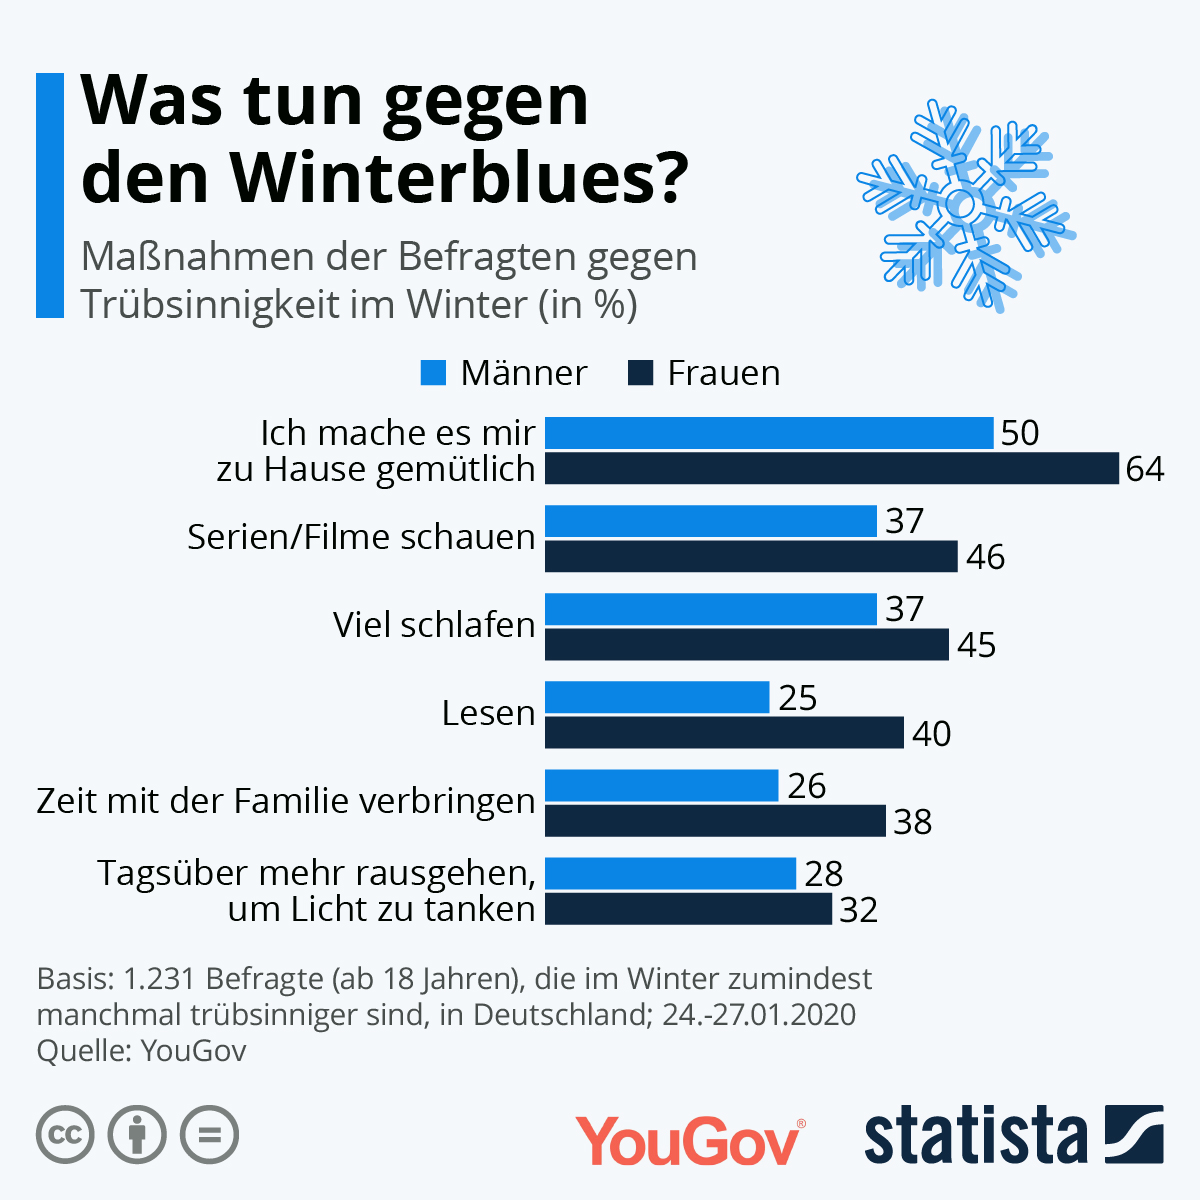 Was tun bei Winterblues?